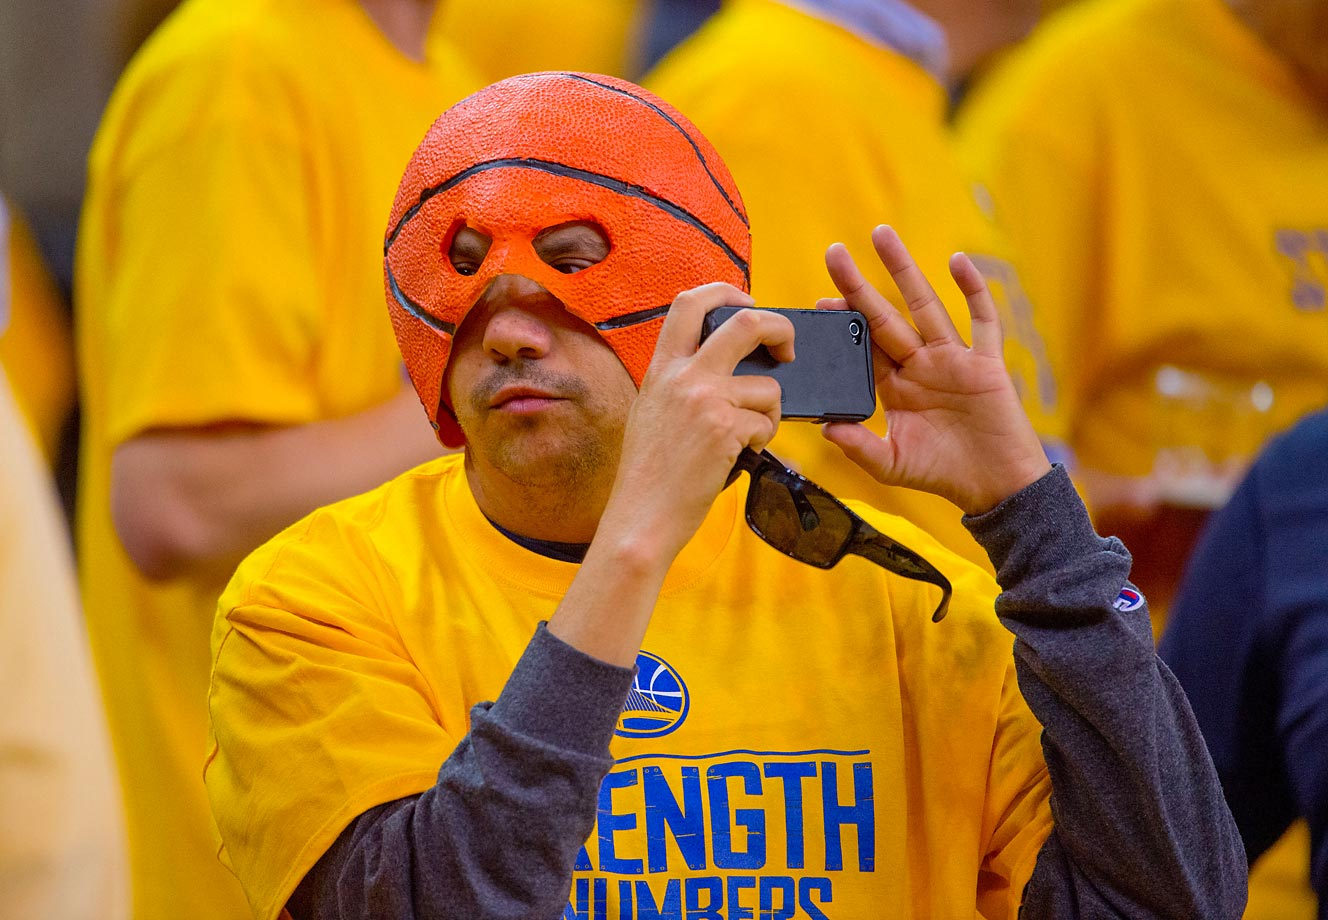 One Golden State Warriors fan captures a moment before Game 1 of the 2015 NBA Finals on June 4.